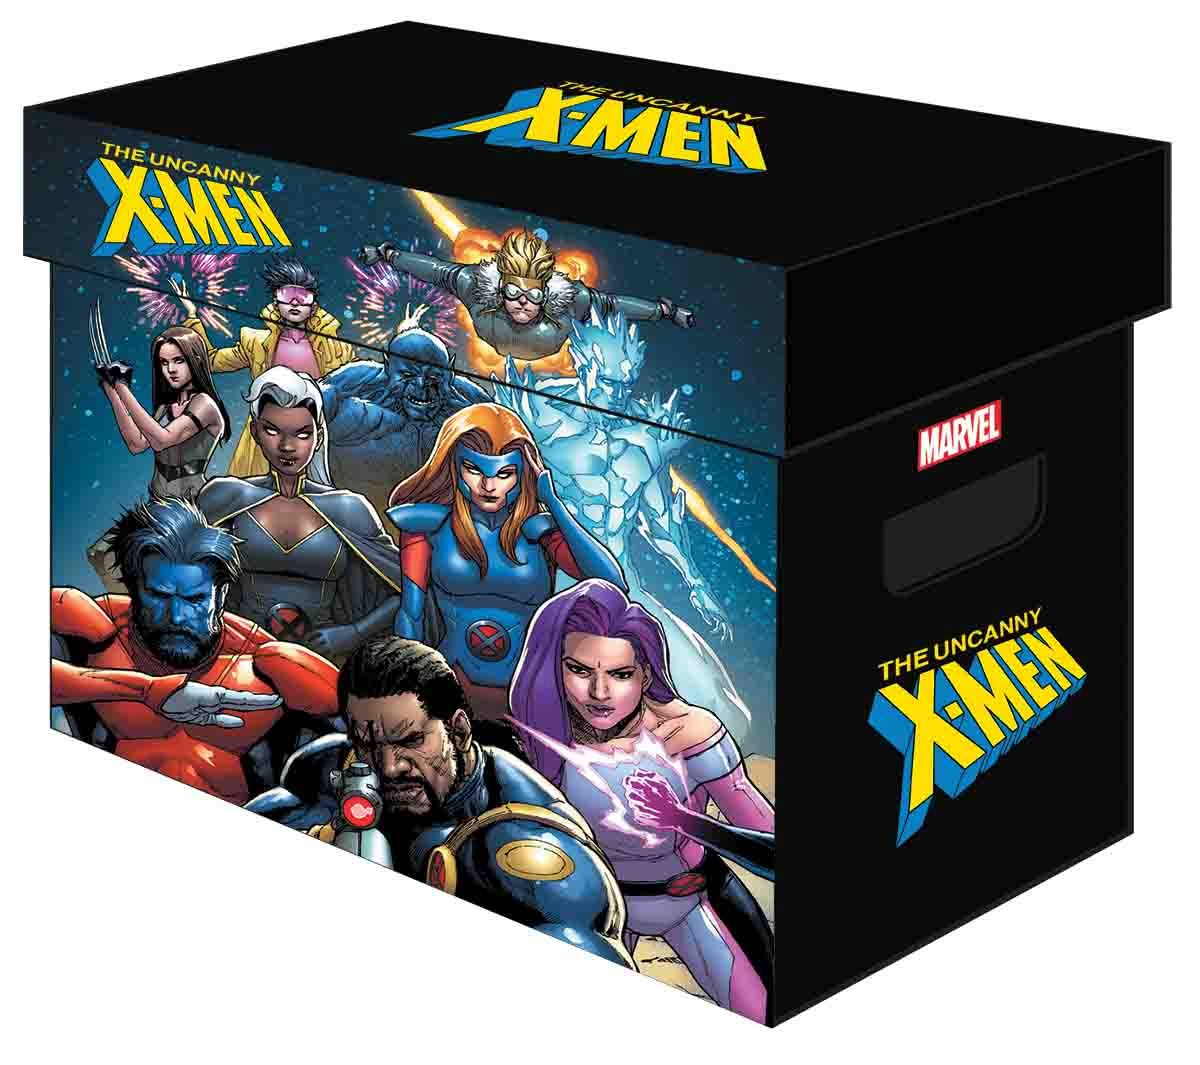 MARVEL GRAPHIC COMIC BOX: UNCANNY X-MEN #1